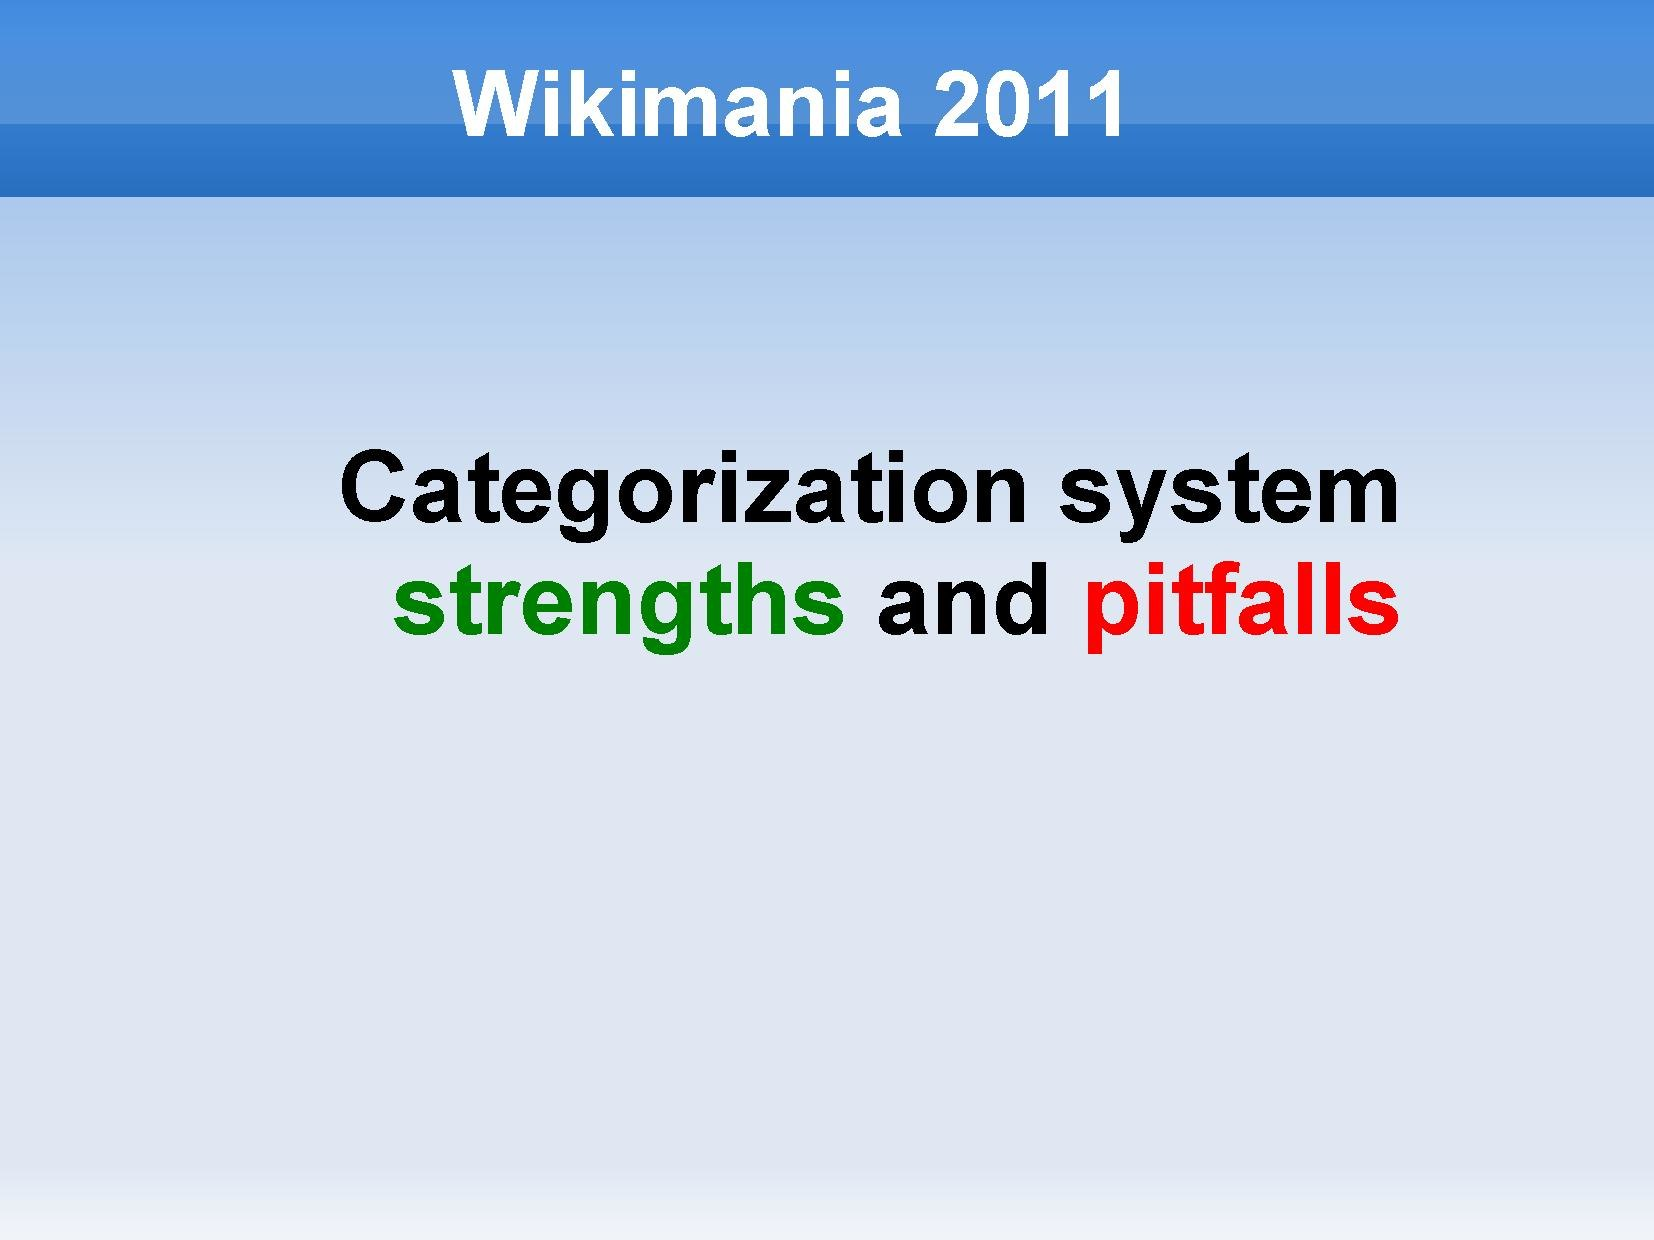 Wikimania 2011 Categorization system strengths and pitfalls.pdf